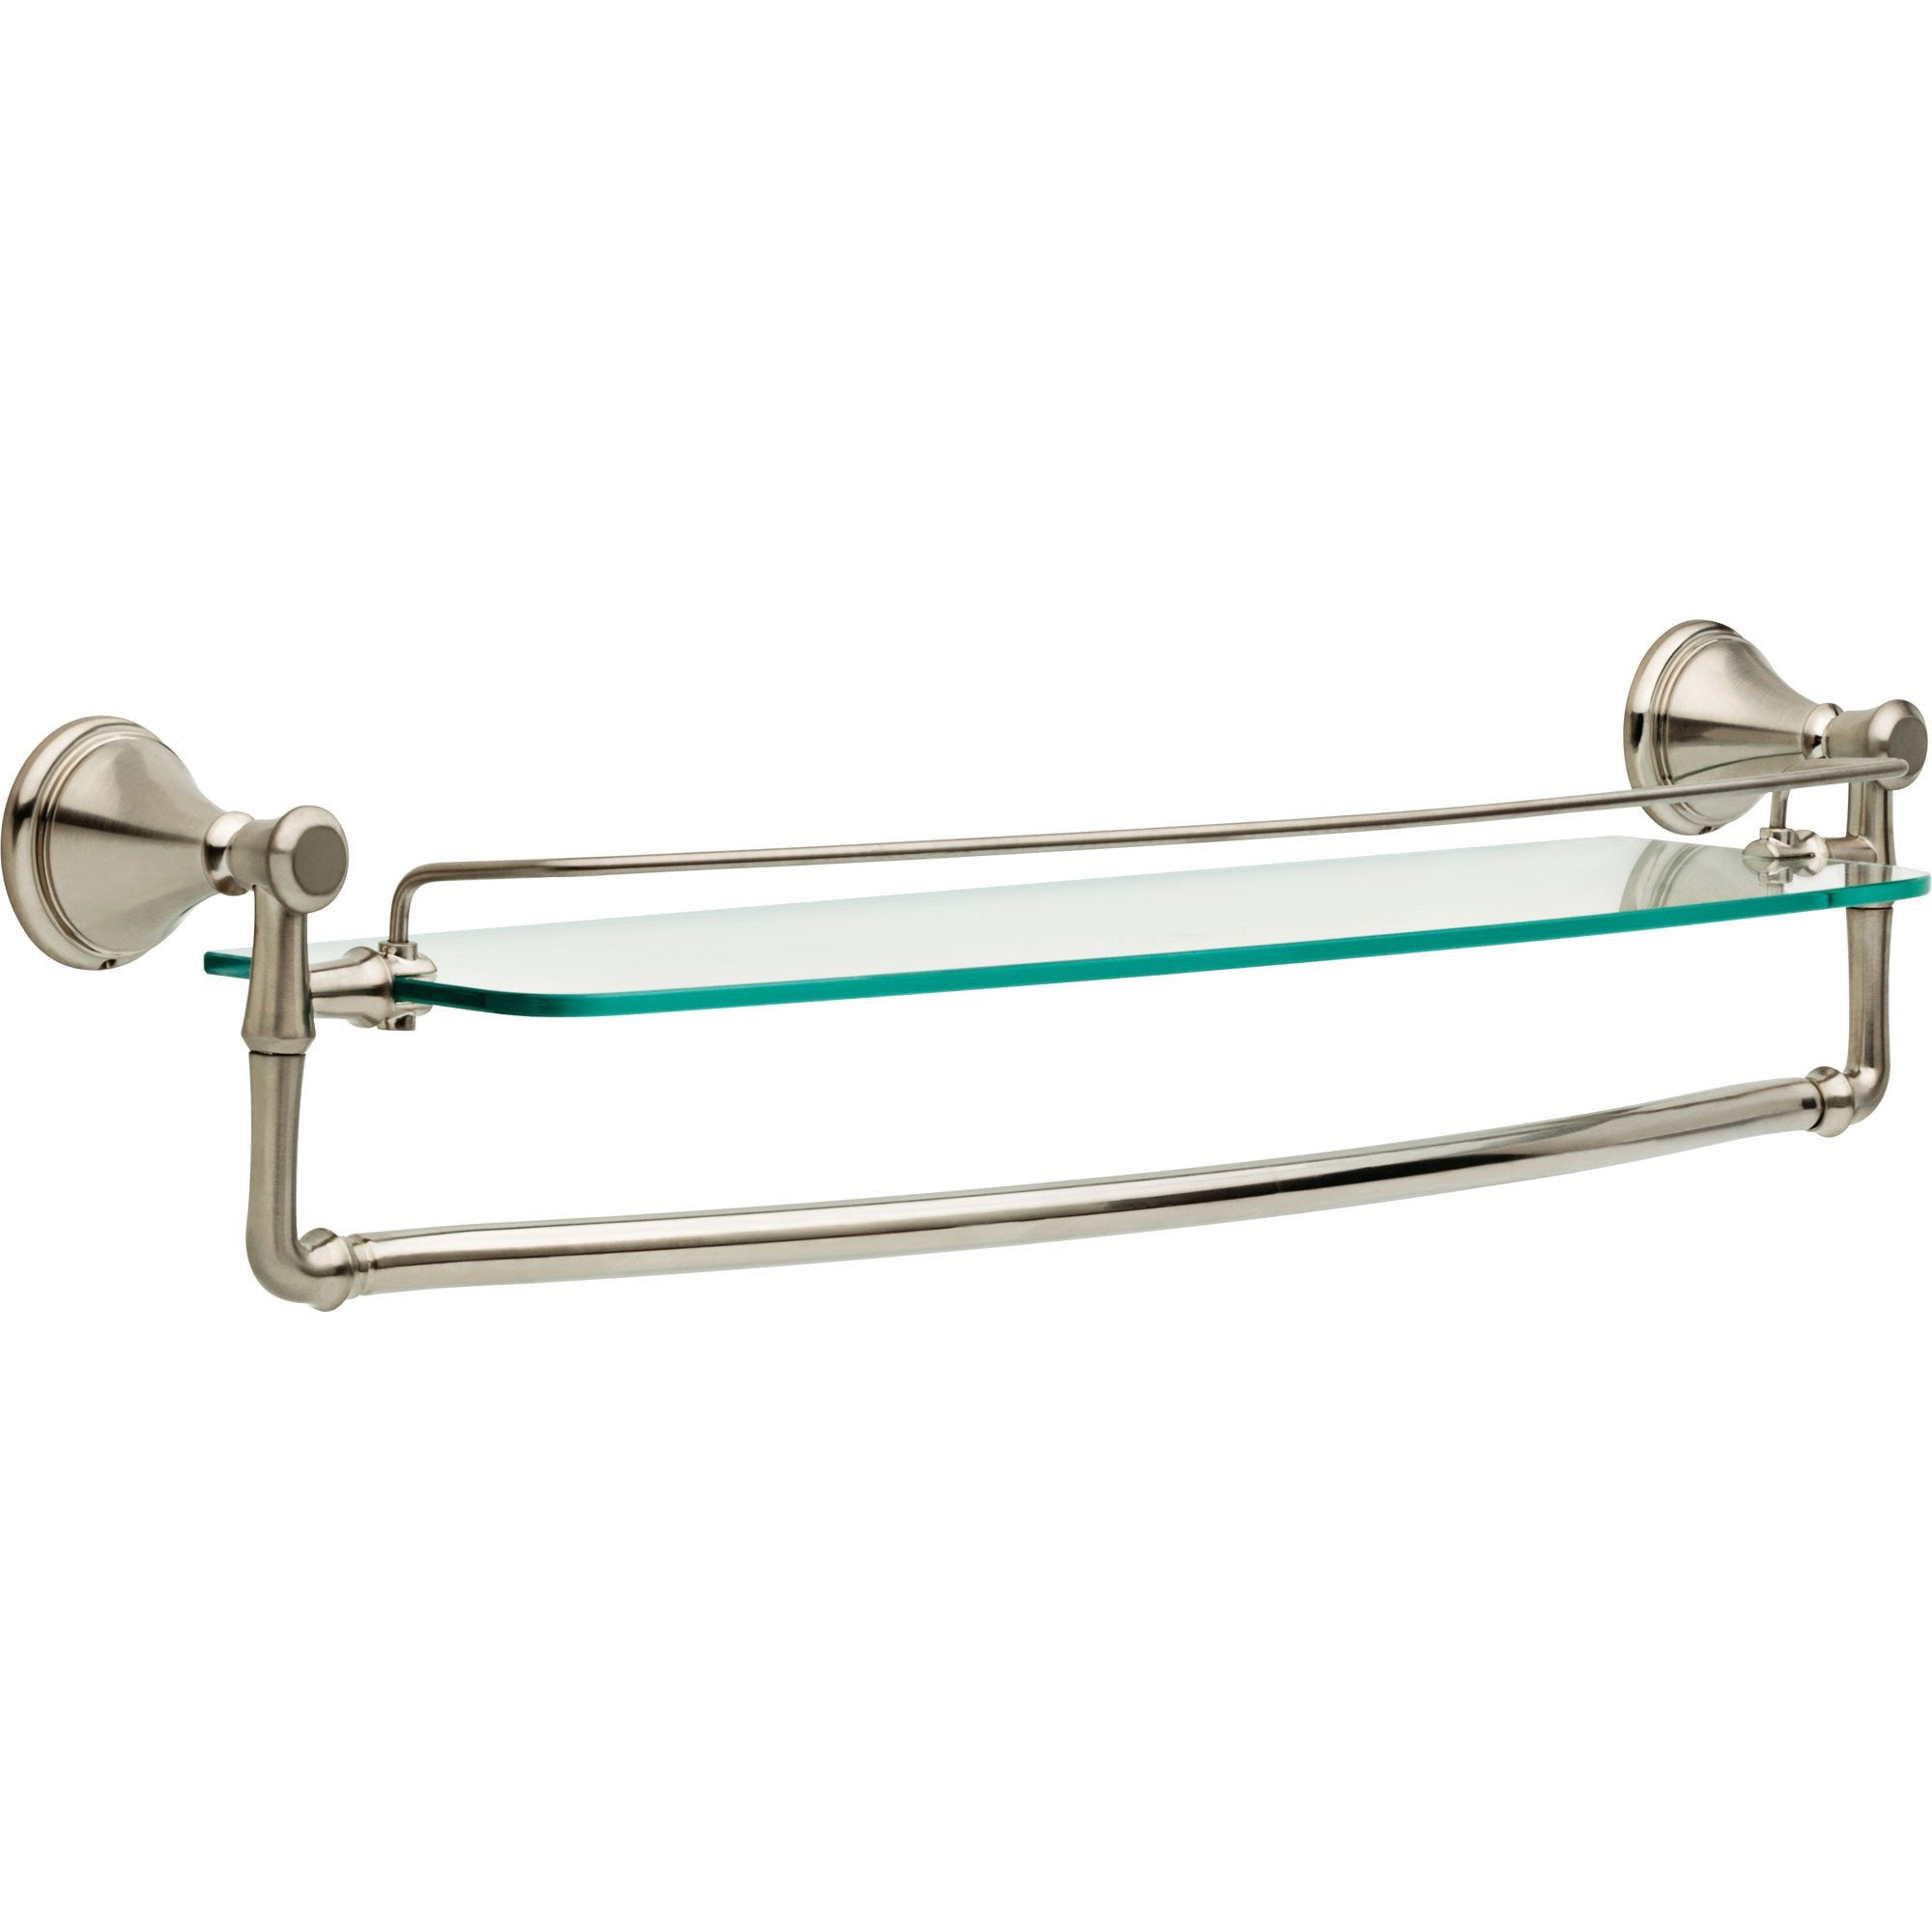 "Delta Cassidy Stainless Steel 24"" Glass Shelf with Removable Towel Bar 638899"